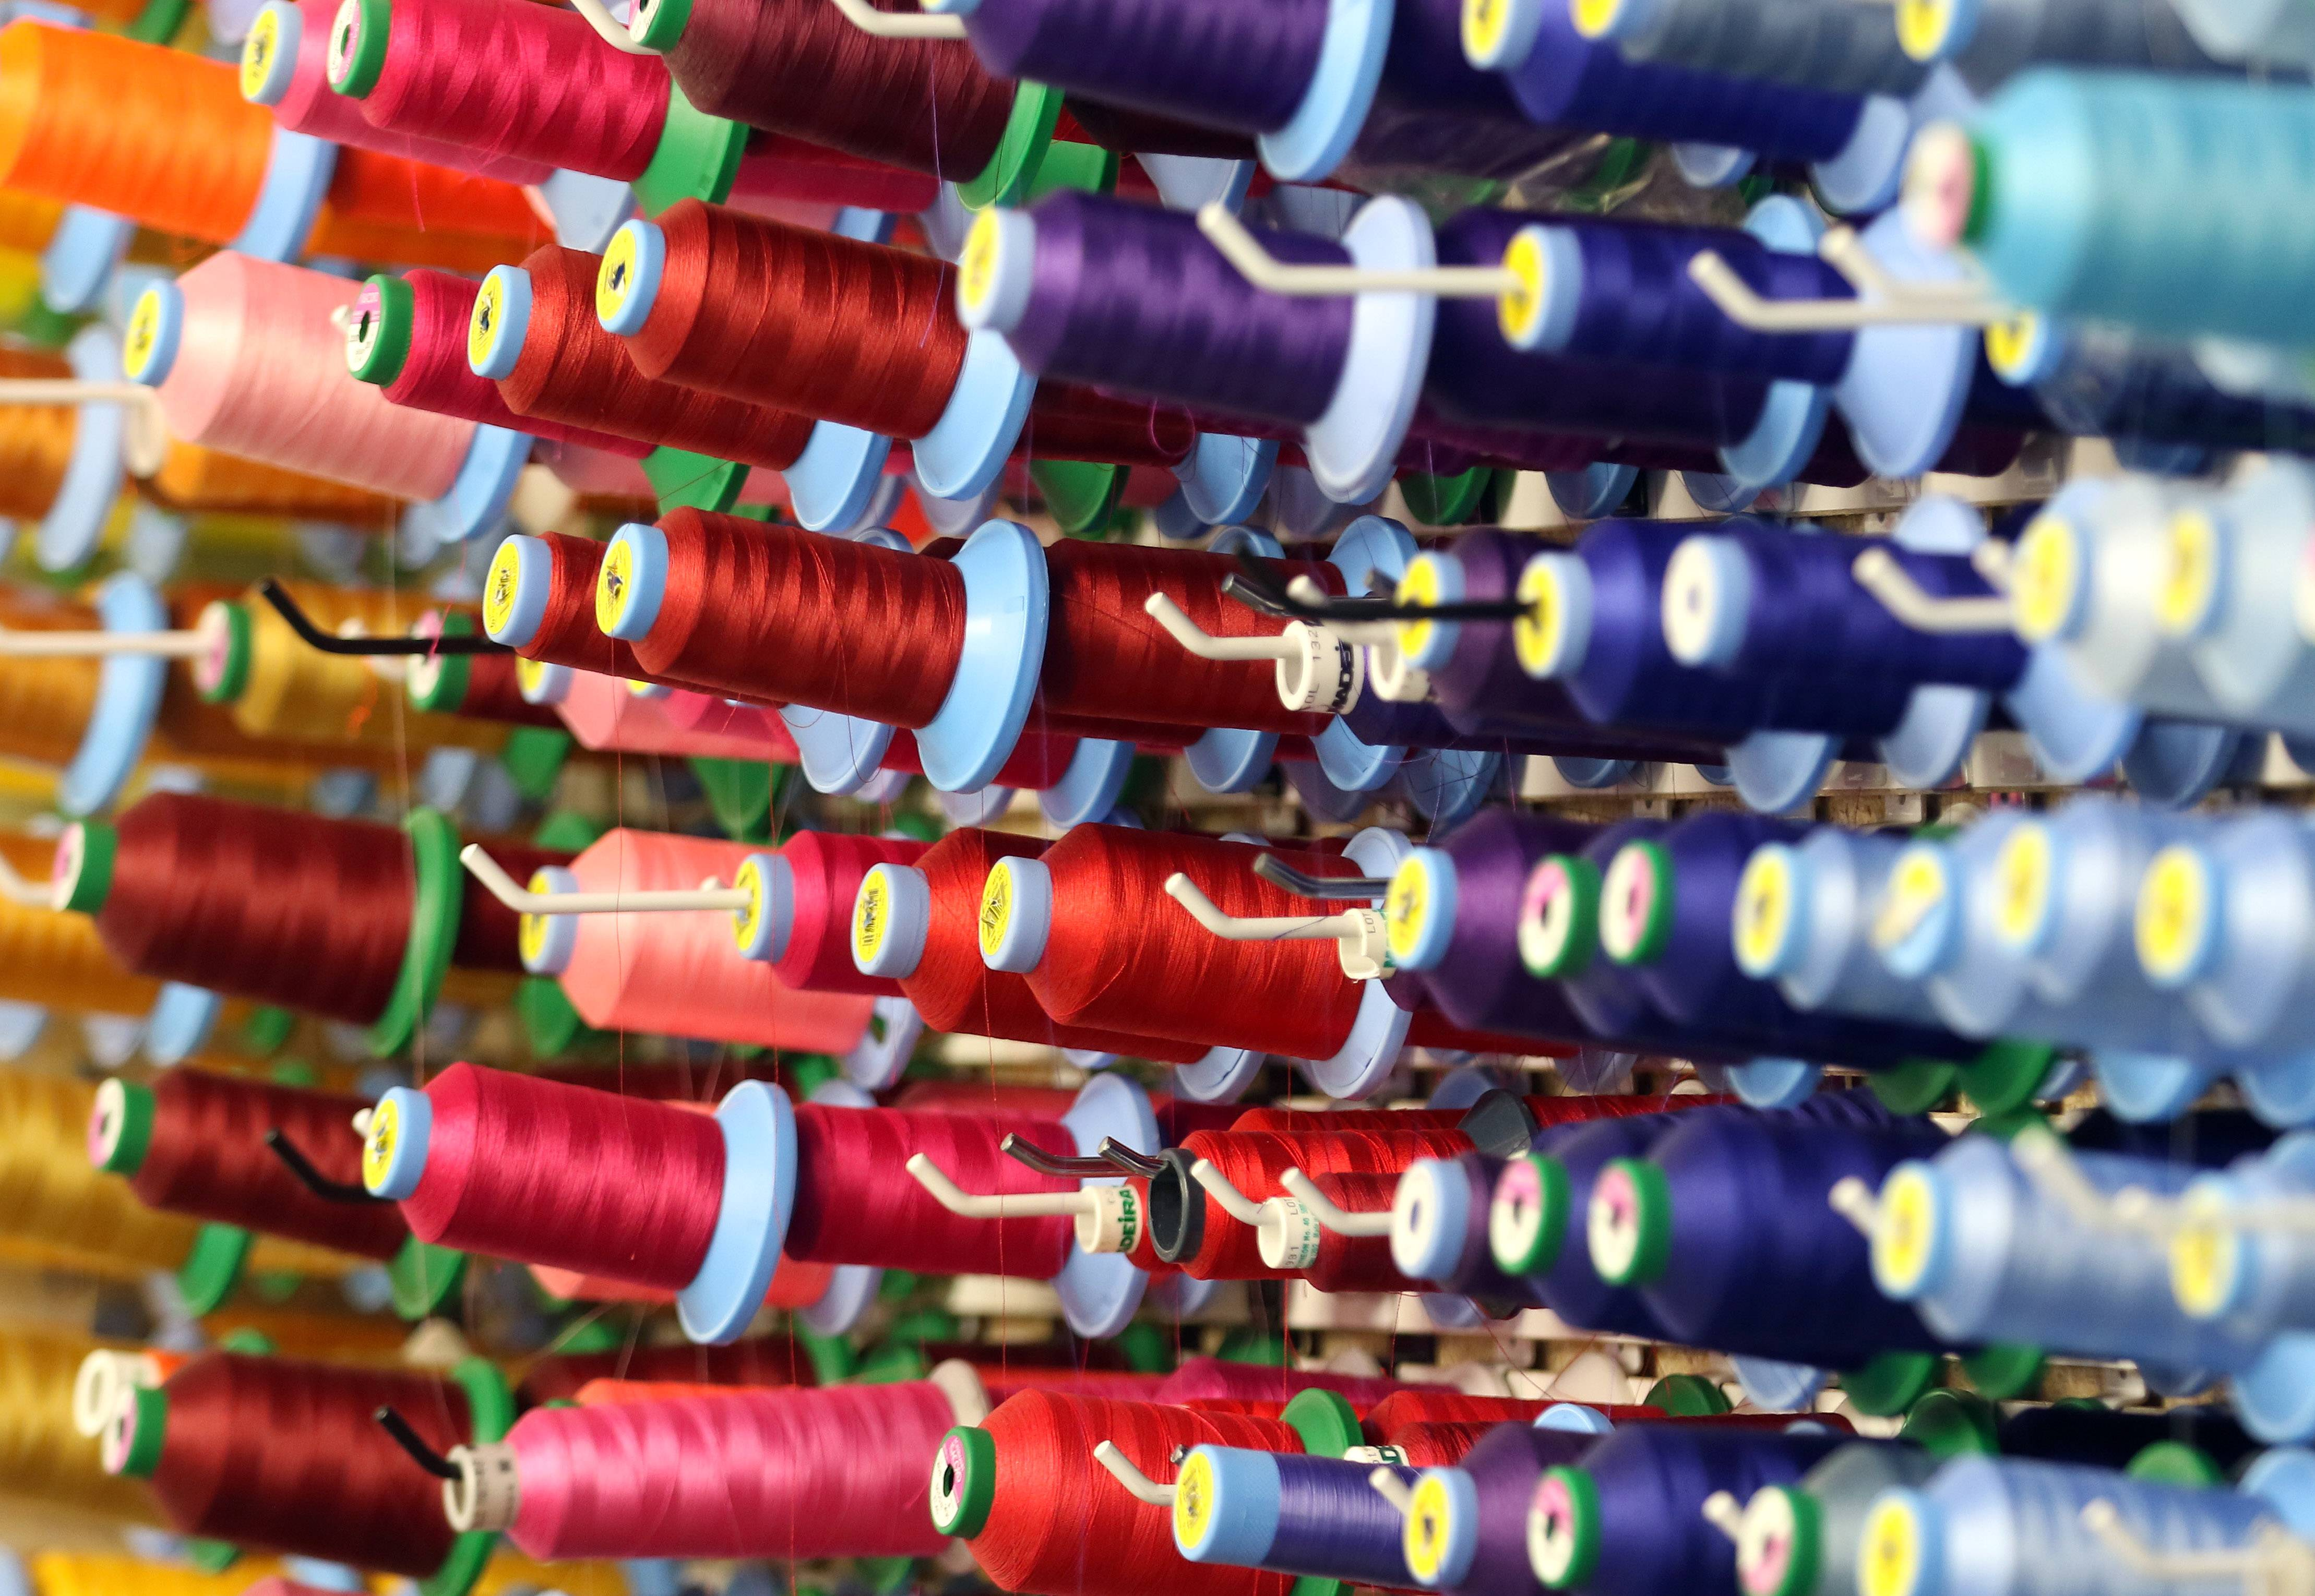 Spools of thread are for Nancy Solomon's new embroidery machine. Solomon is the owner of Melon Ink in Lake Zurich. She started the business in her home years ago. She has moved into a shop and now expanded to the shop next door.